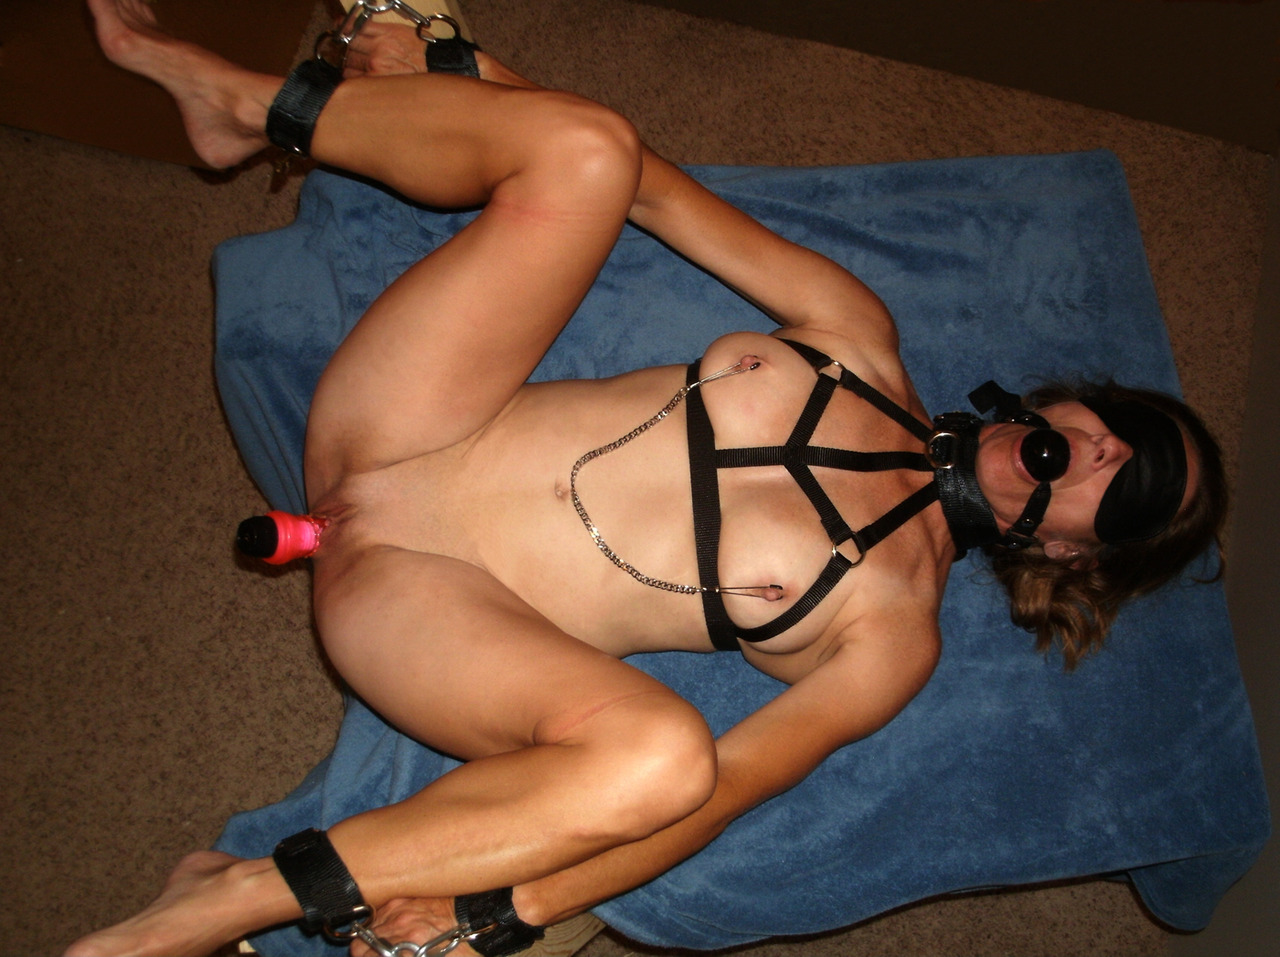 bdsm tumblr amateur